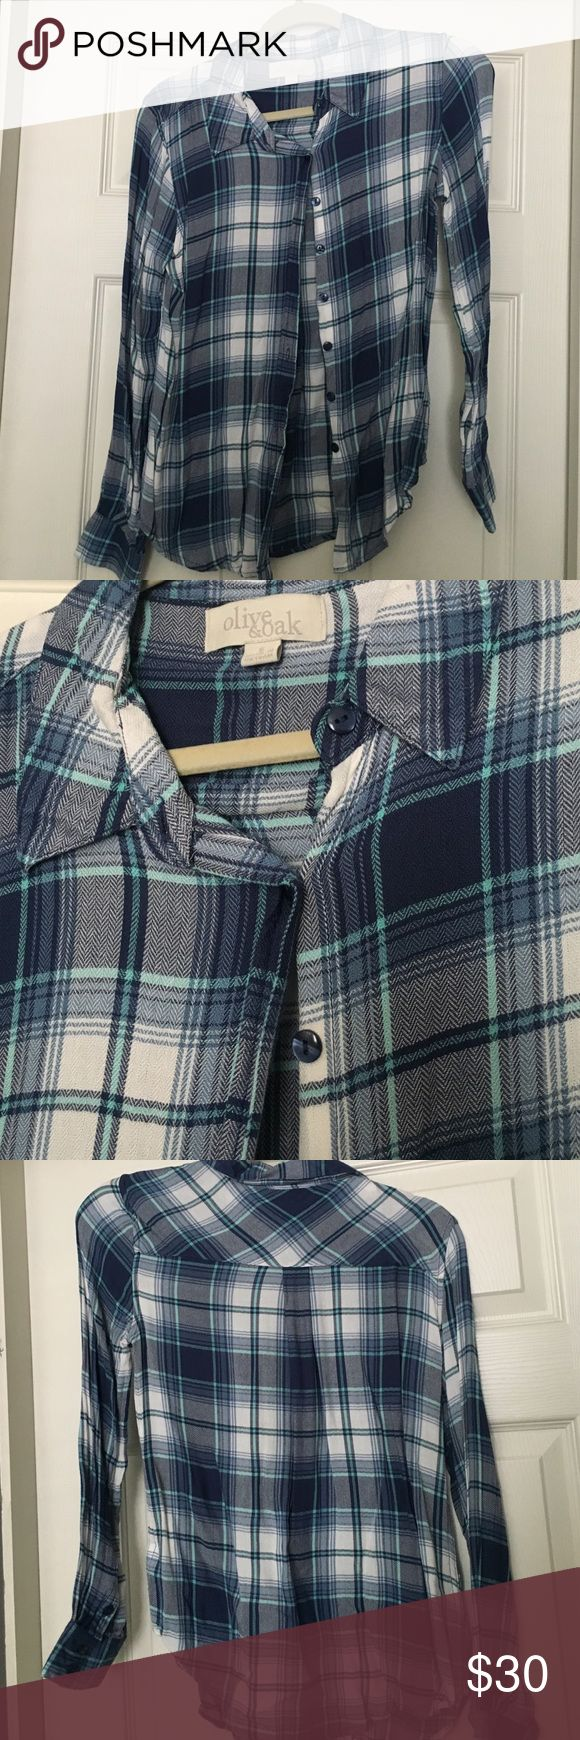 Blue plaid button up Pretty blue plaid blouse made of a breathable fabric and not flannel. More feminine fit than some typical plaid shirts. Olive & Oak Tops Button Down Shirts